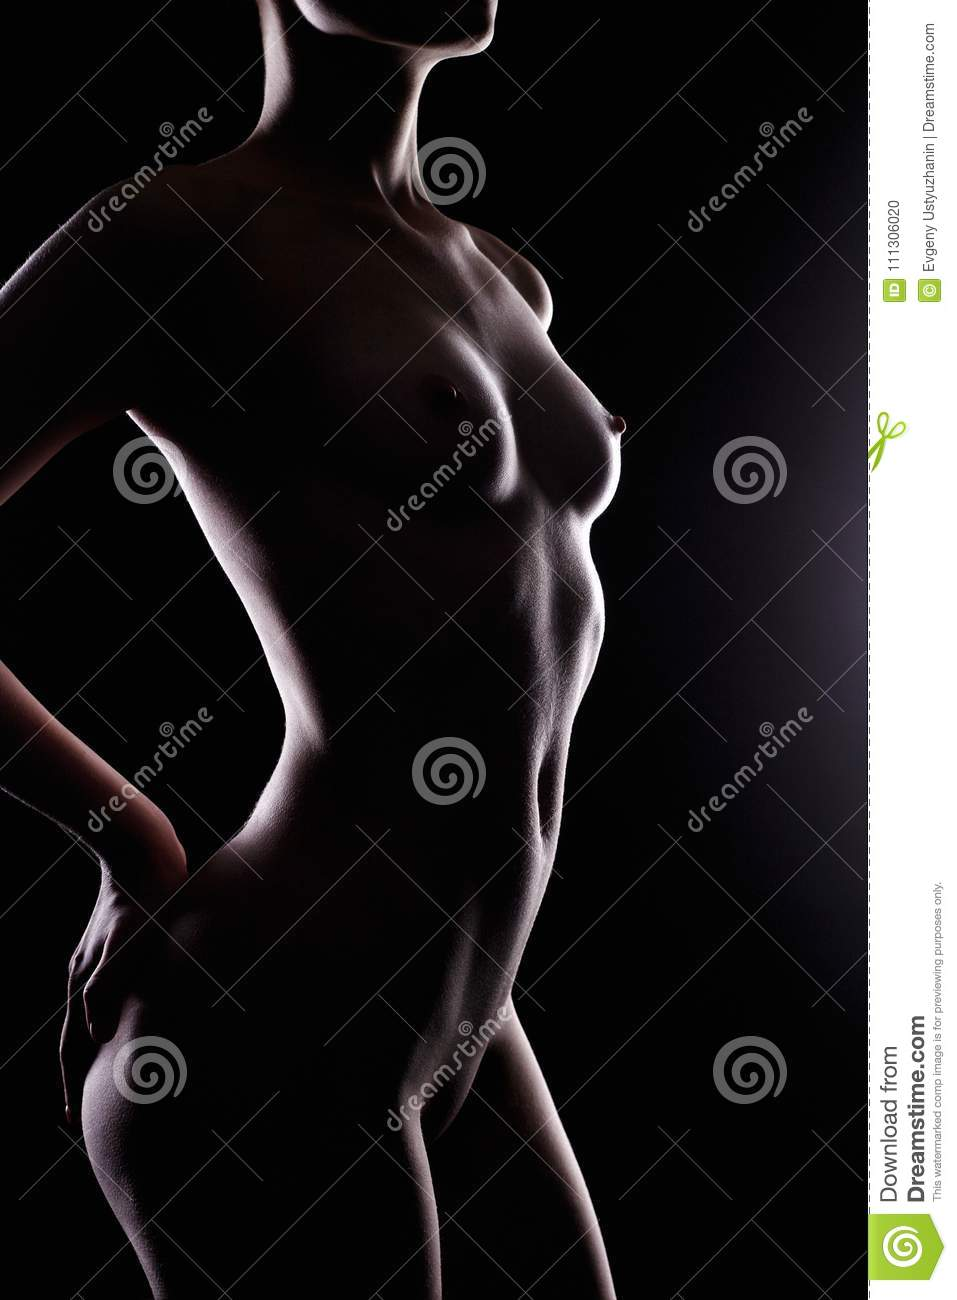 Black nude woman silhouette Female Nude Silhouette Over Black Stock Photo Image Of Naked Fashion 111306020